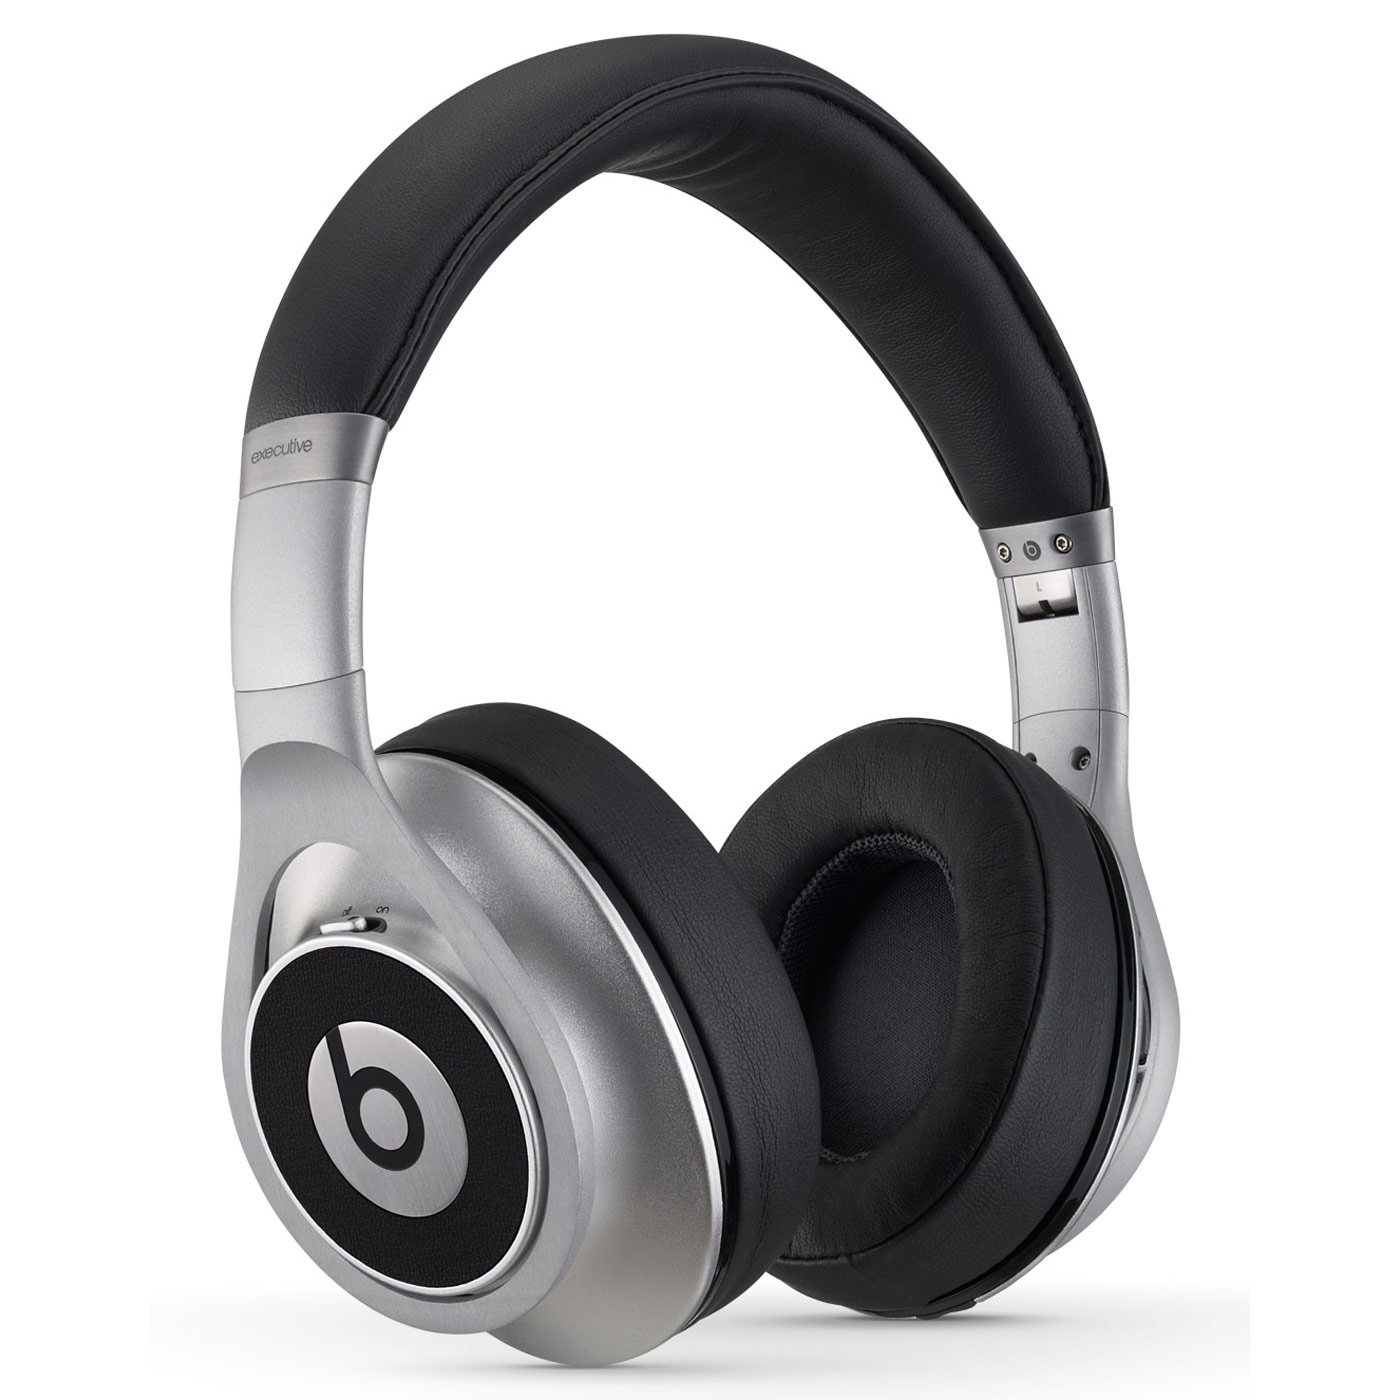 Meuble Hifi Fermé Beats Executive Gris - Casque Beats By Dr. Dre Sur Ldlc.com